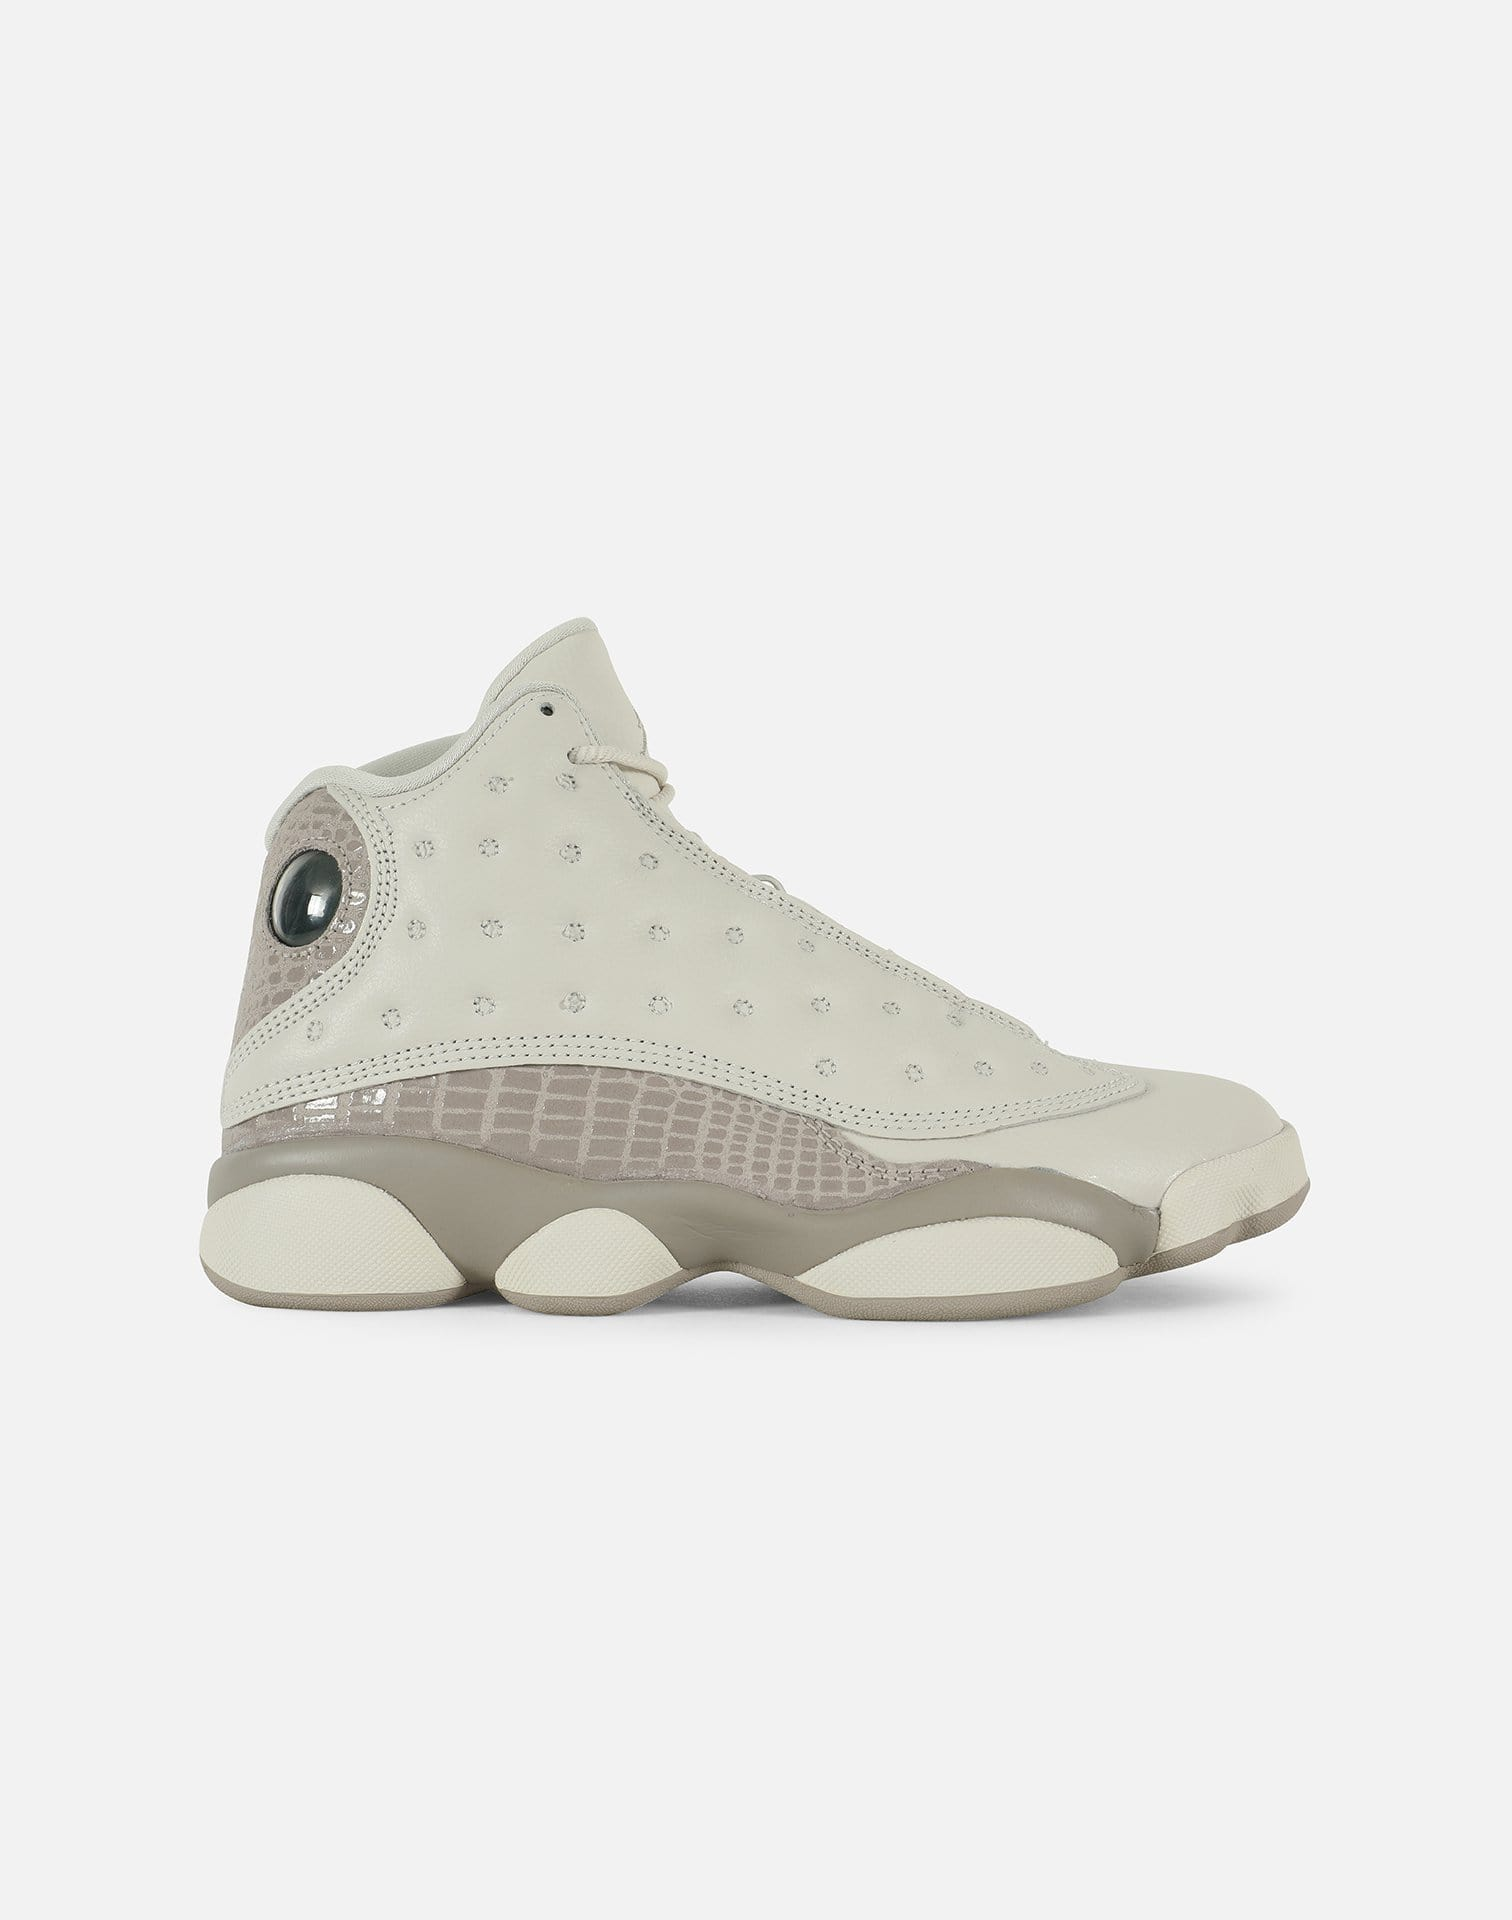 Jordan Women's Air Jordan Retro 13 'Phantom'